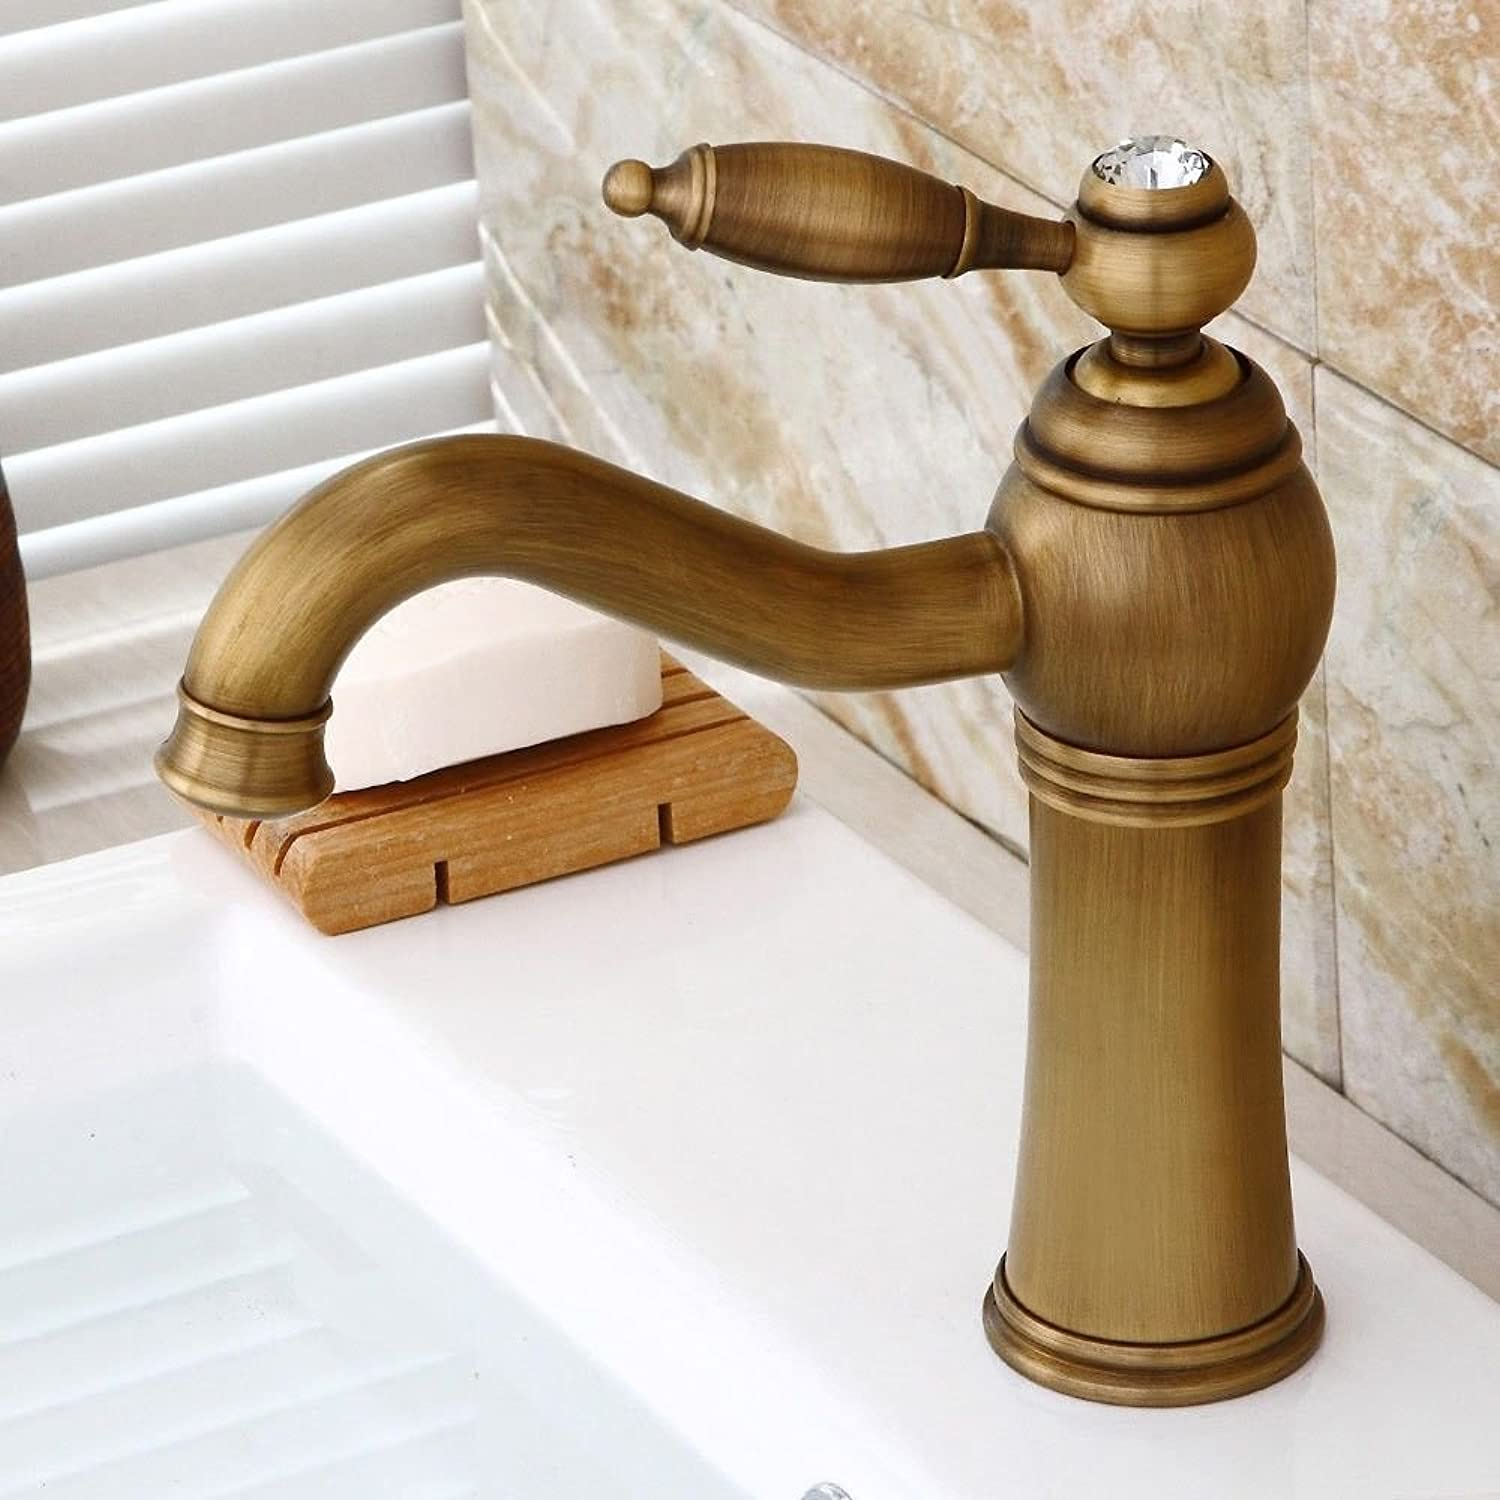 ETERNAL QUALITY Bathroom Sink Basin Tap Brass Mixer Tap Washroom Mixer Faucet To redate the antique brass crystal handle single handle one hole ceramic valve cold water b